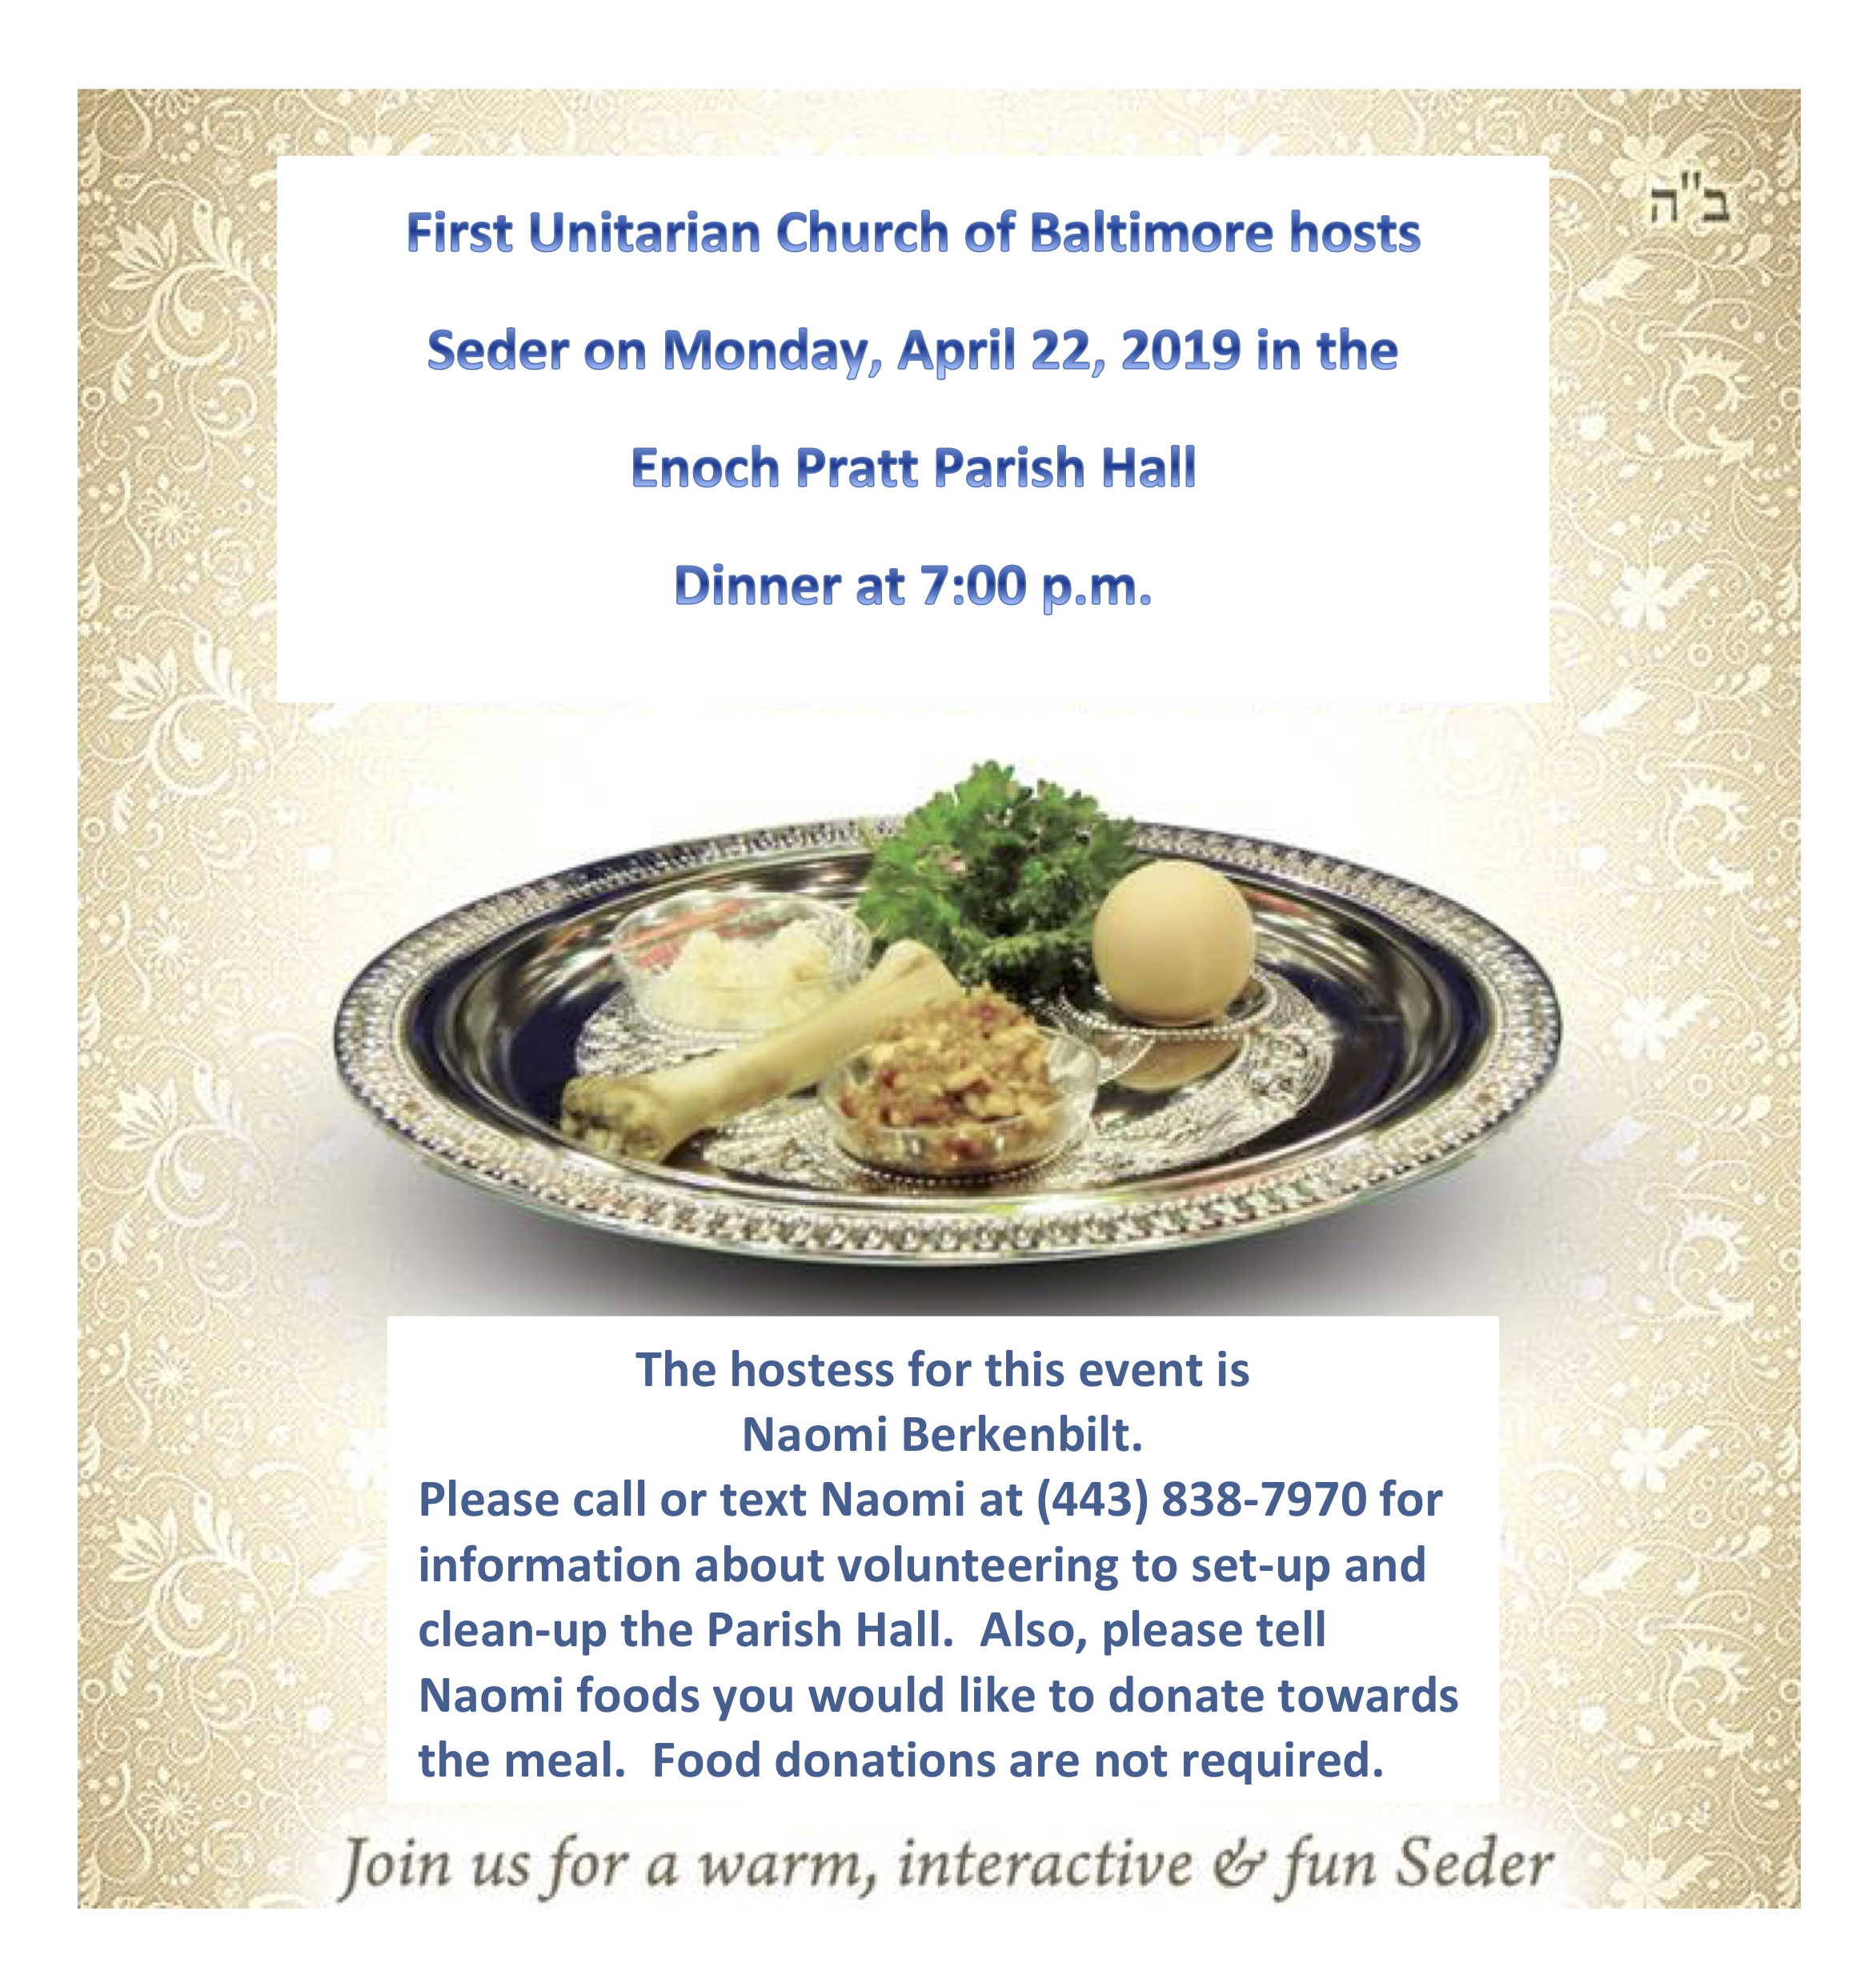 Seder Dinner for Passover - First Unitarian Church of Baltimore